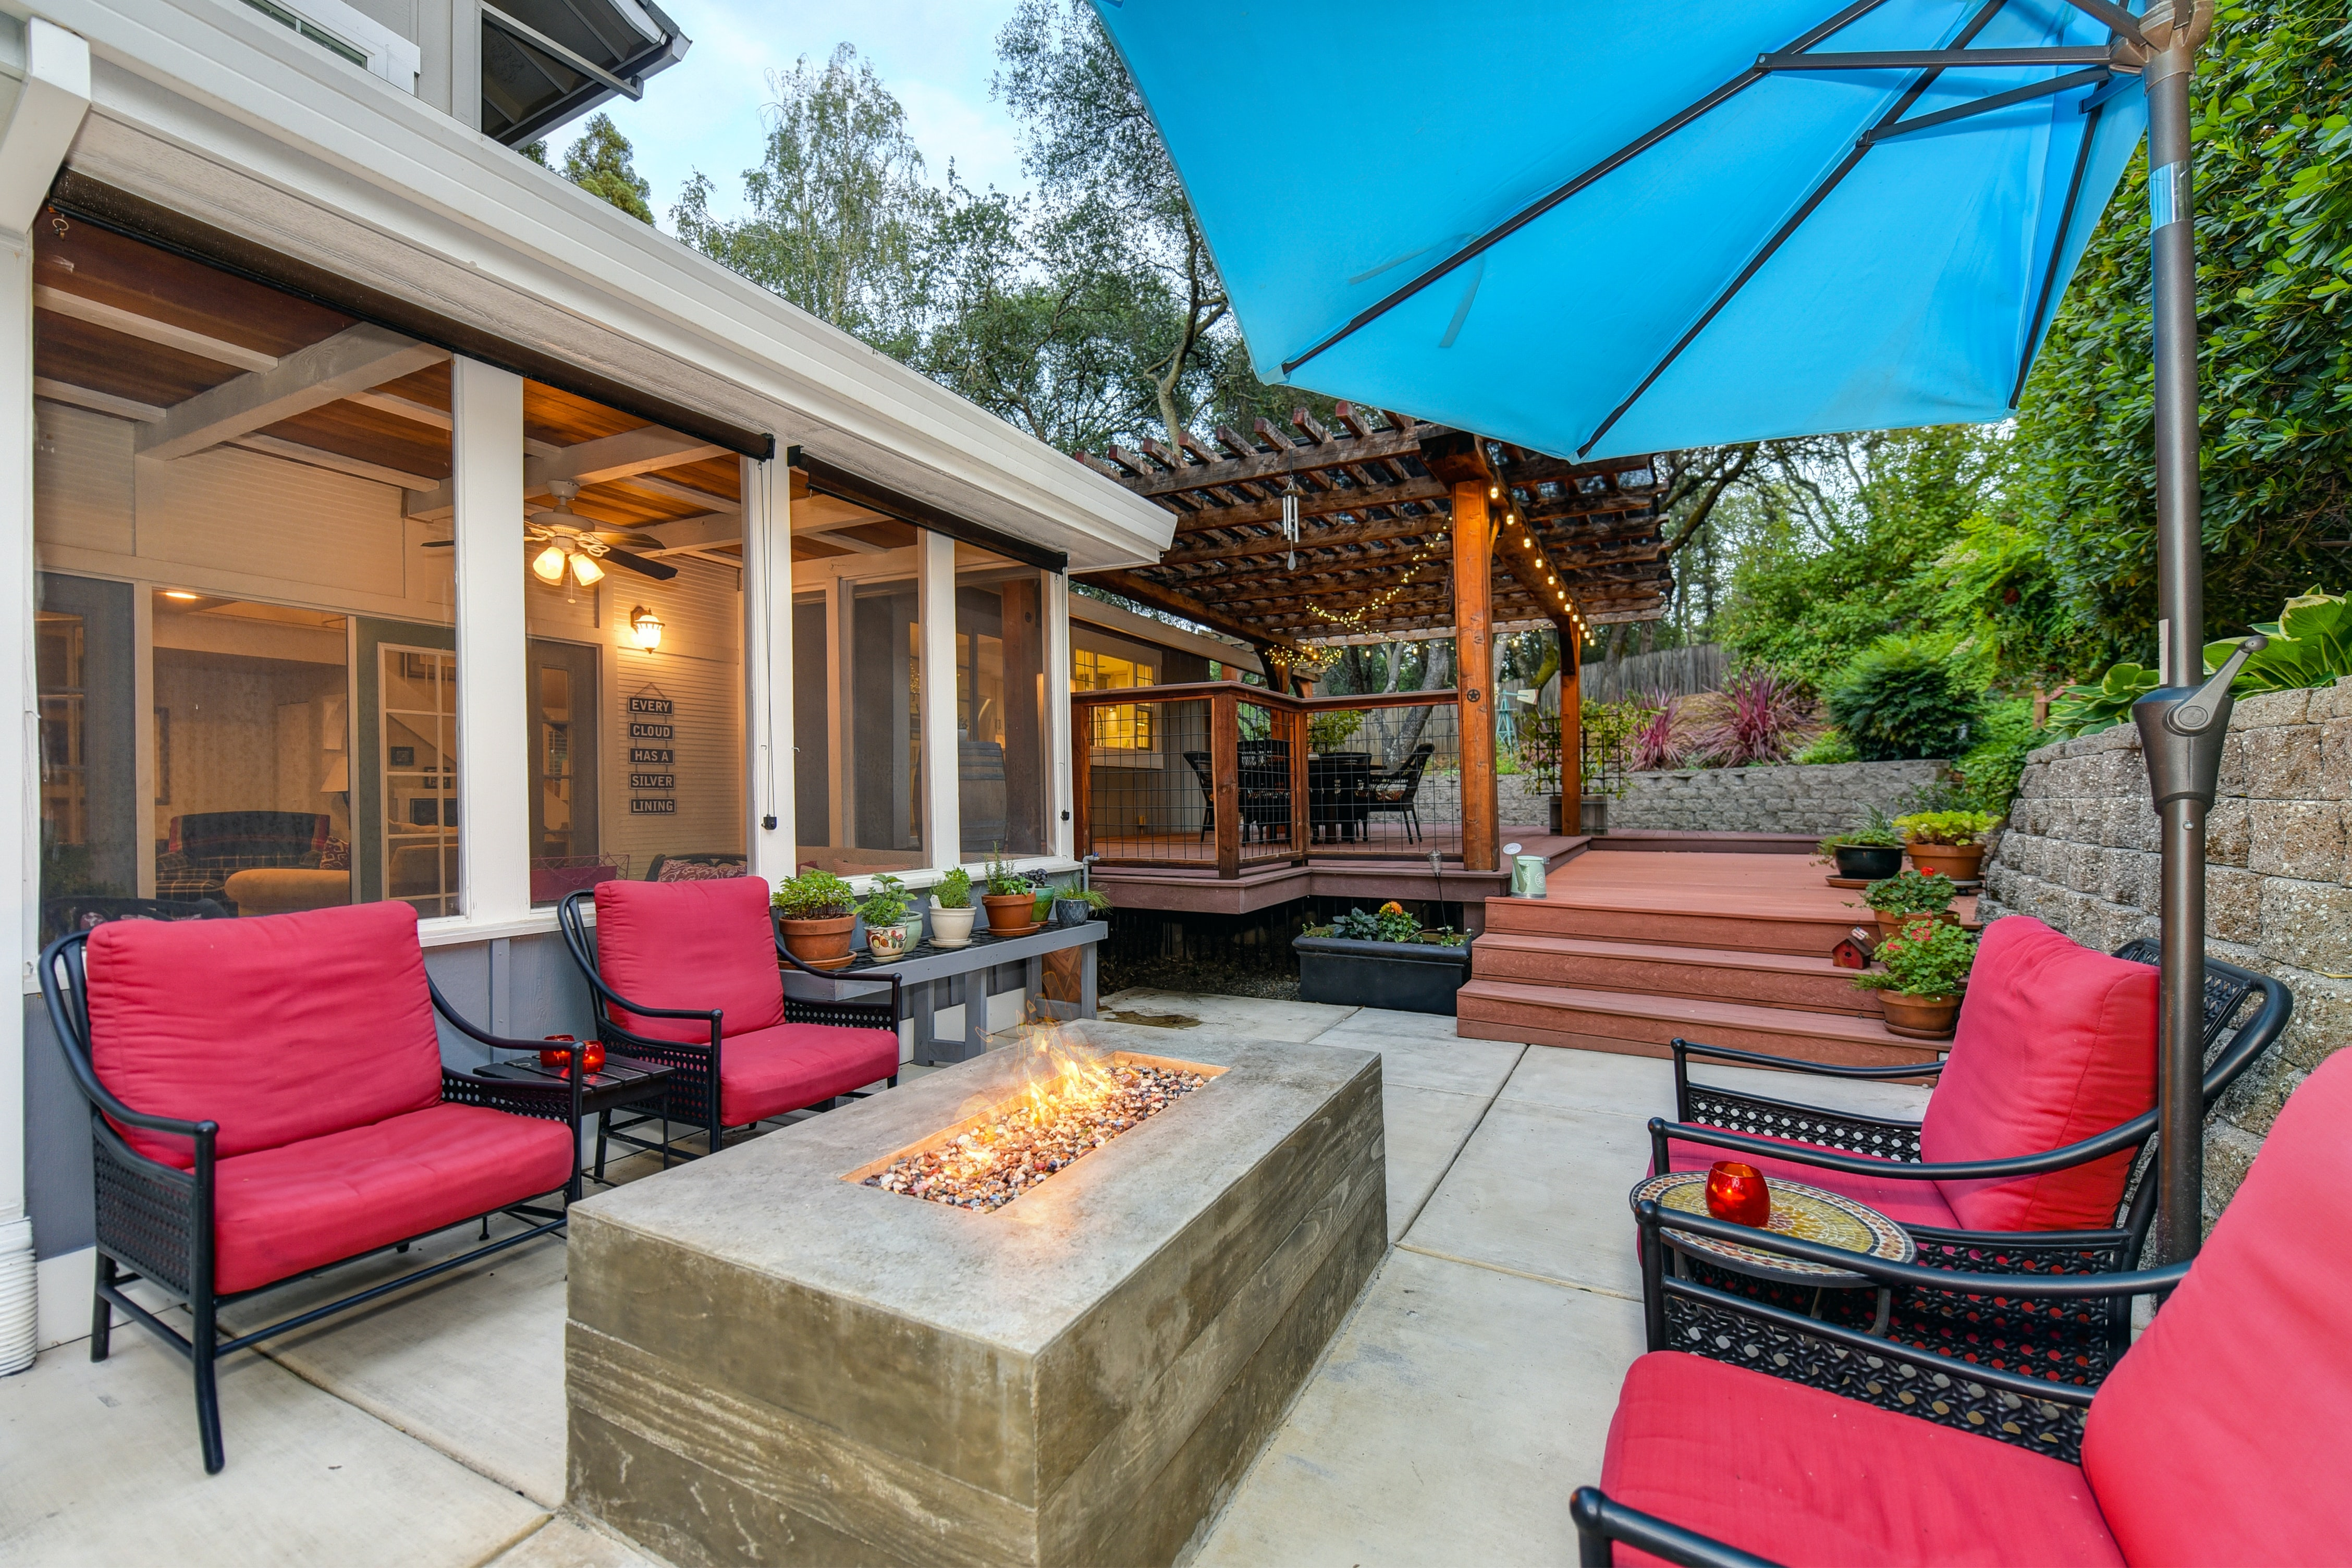 Pack Away Patio Essentials the Right Way's featured image